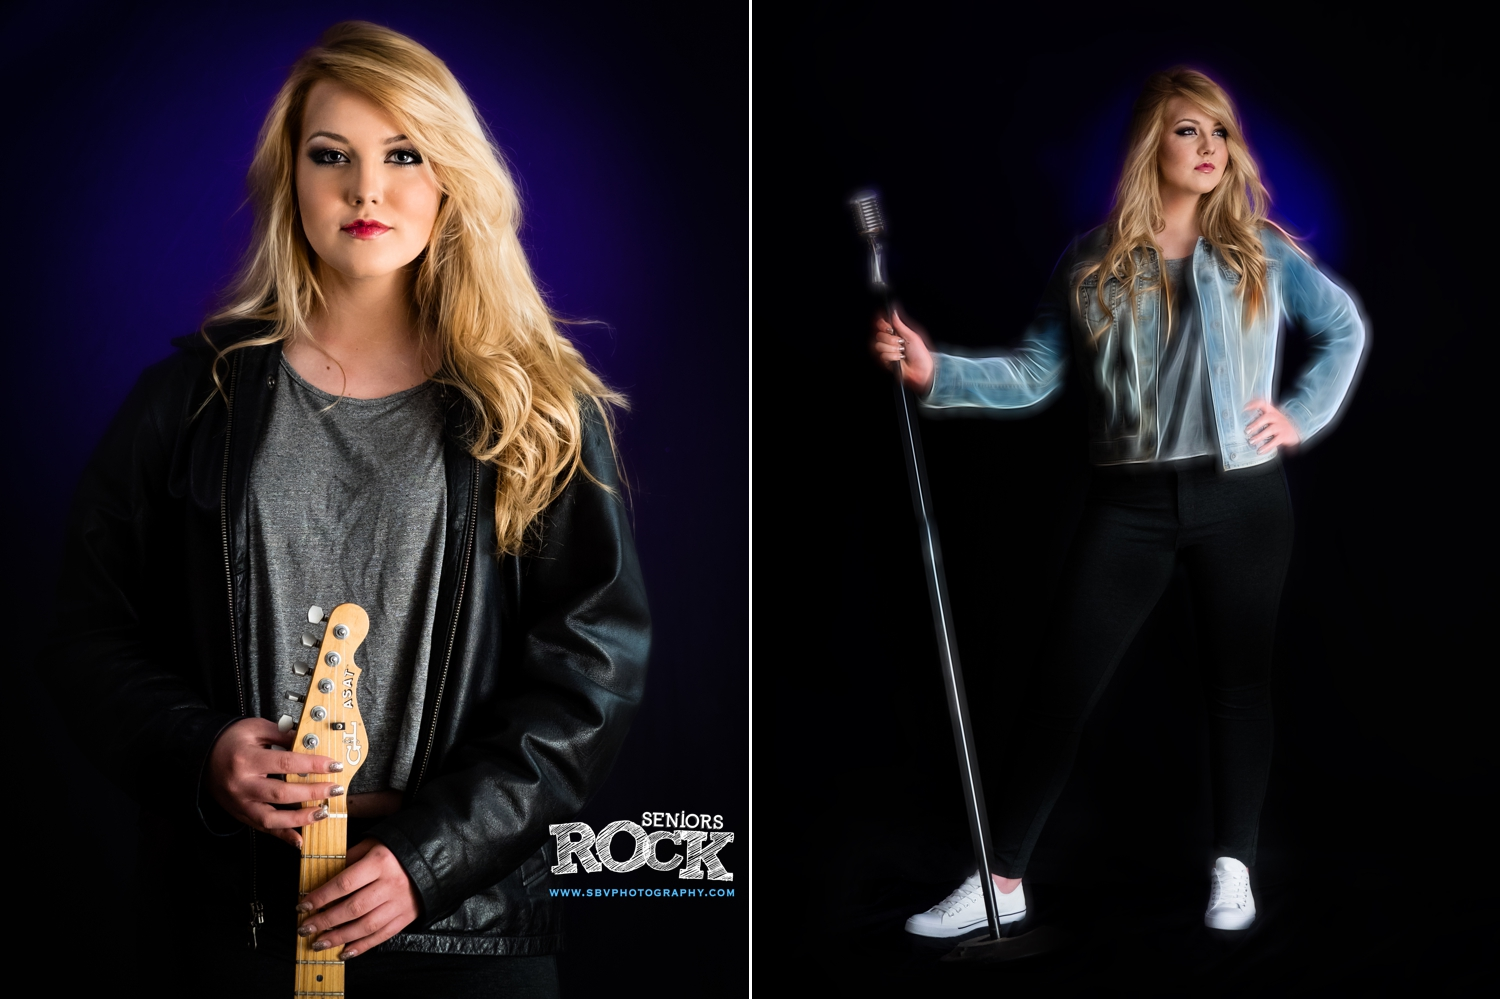 A Rock Star High School Senior session at my Crown Point photo studio.